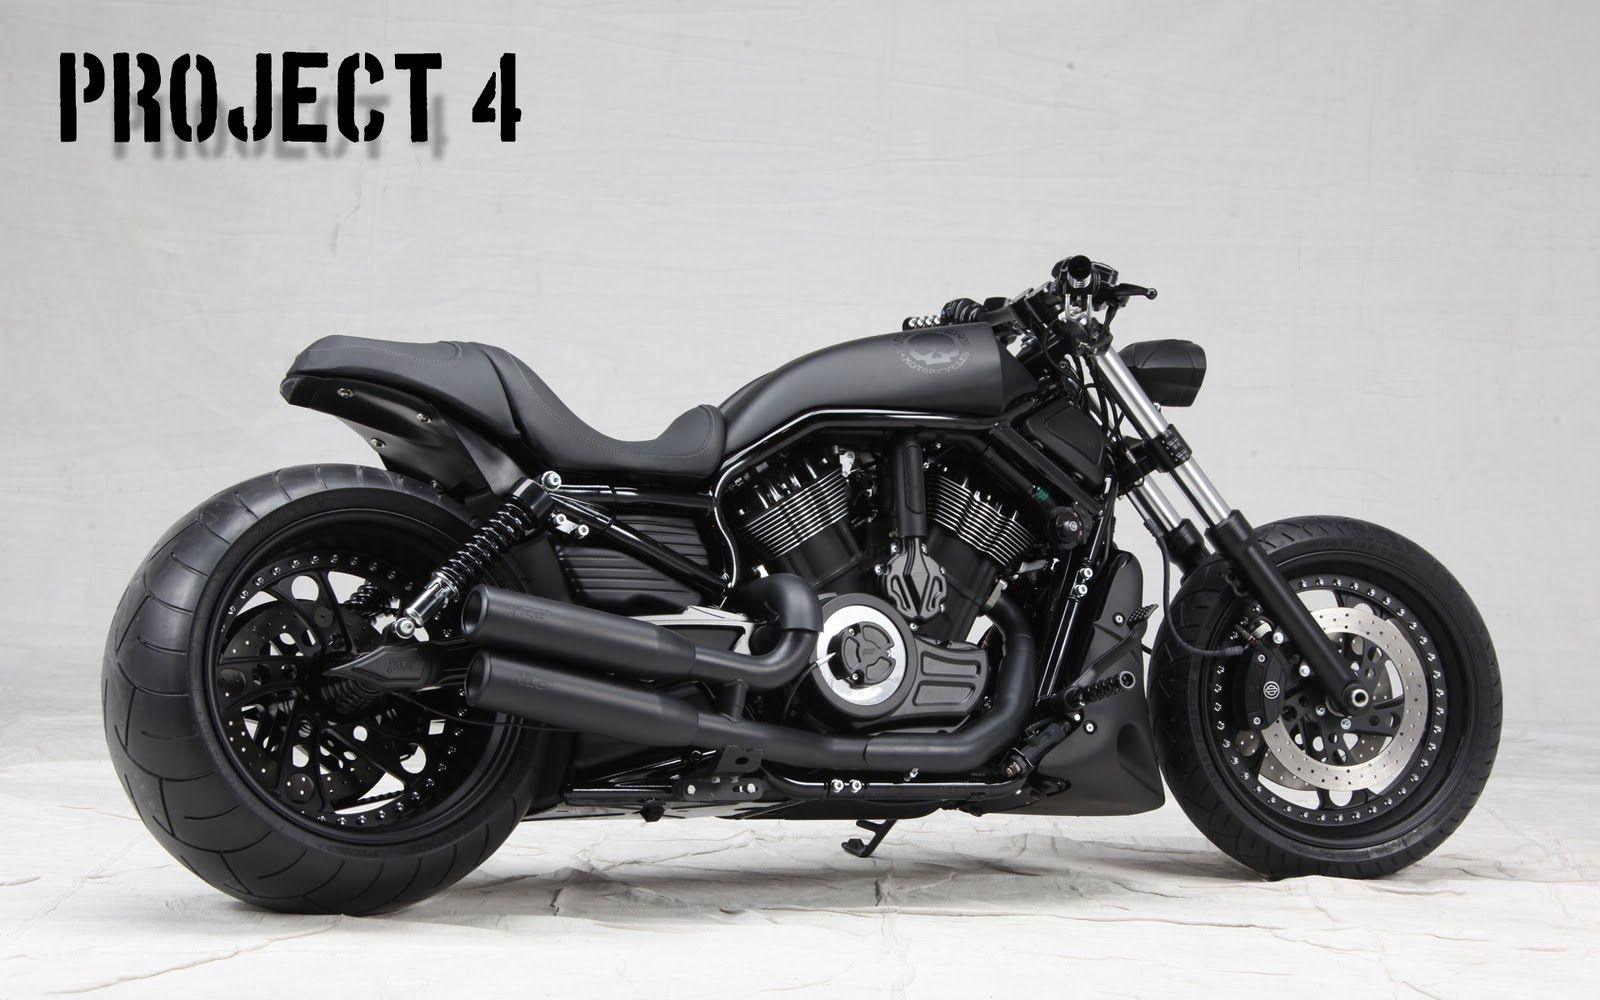 image detail for project 4 project 4 wallpapers harley davidson night rod special harley. Black Bedroom Furniture Sets. Home Design Ideas